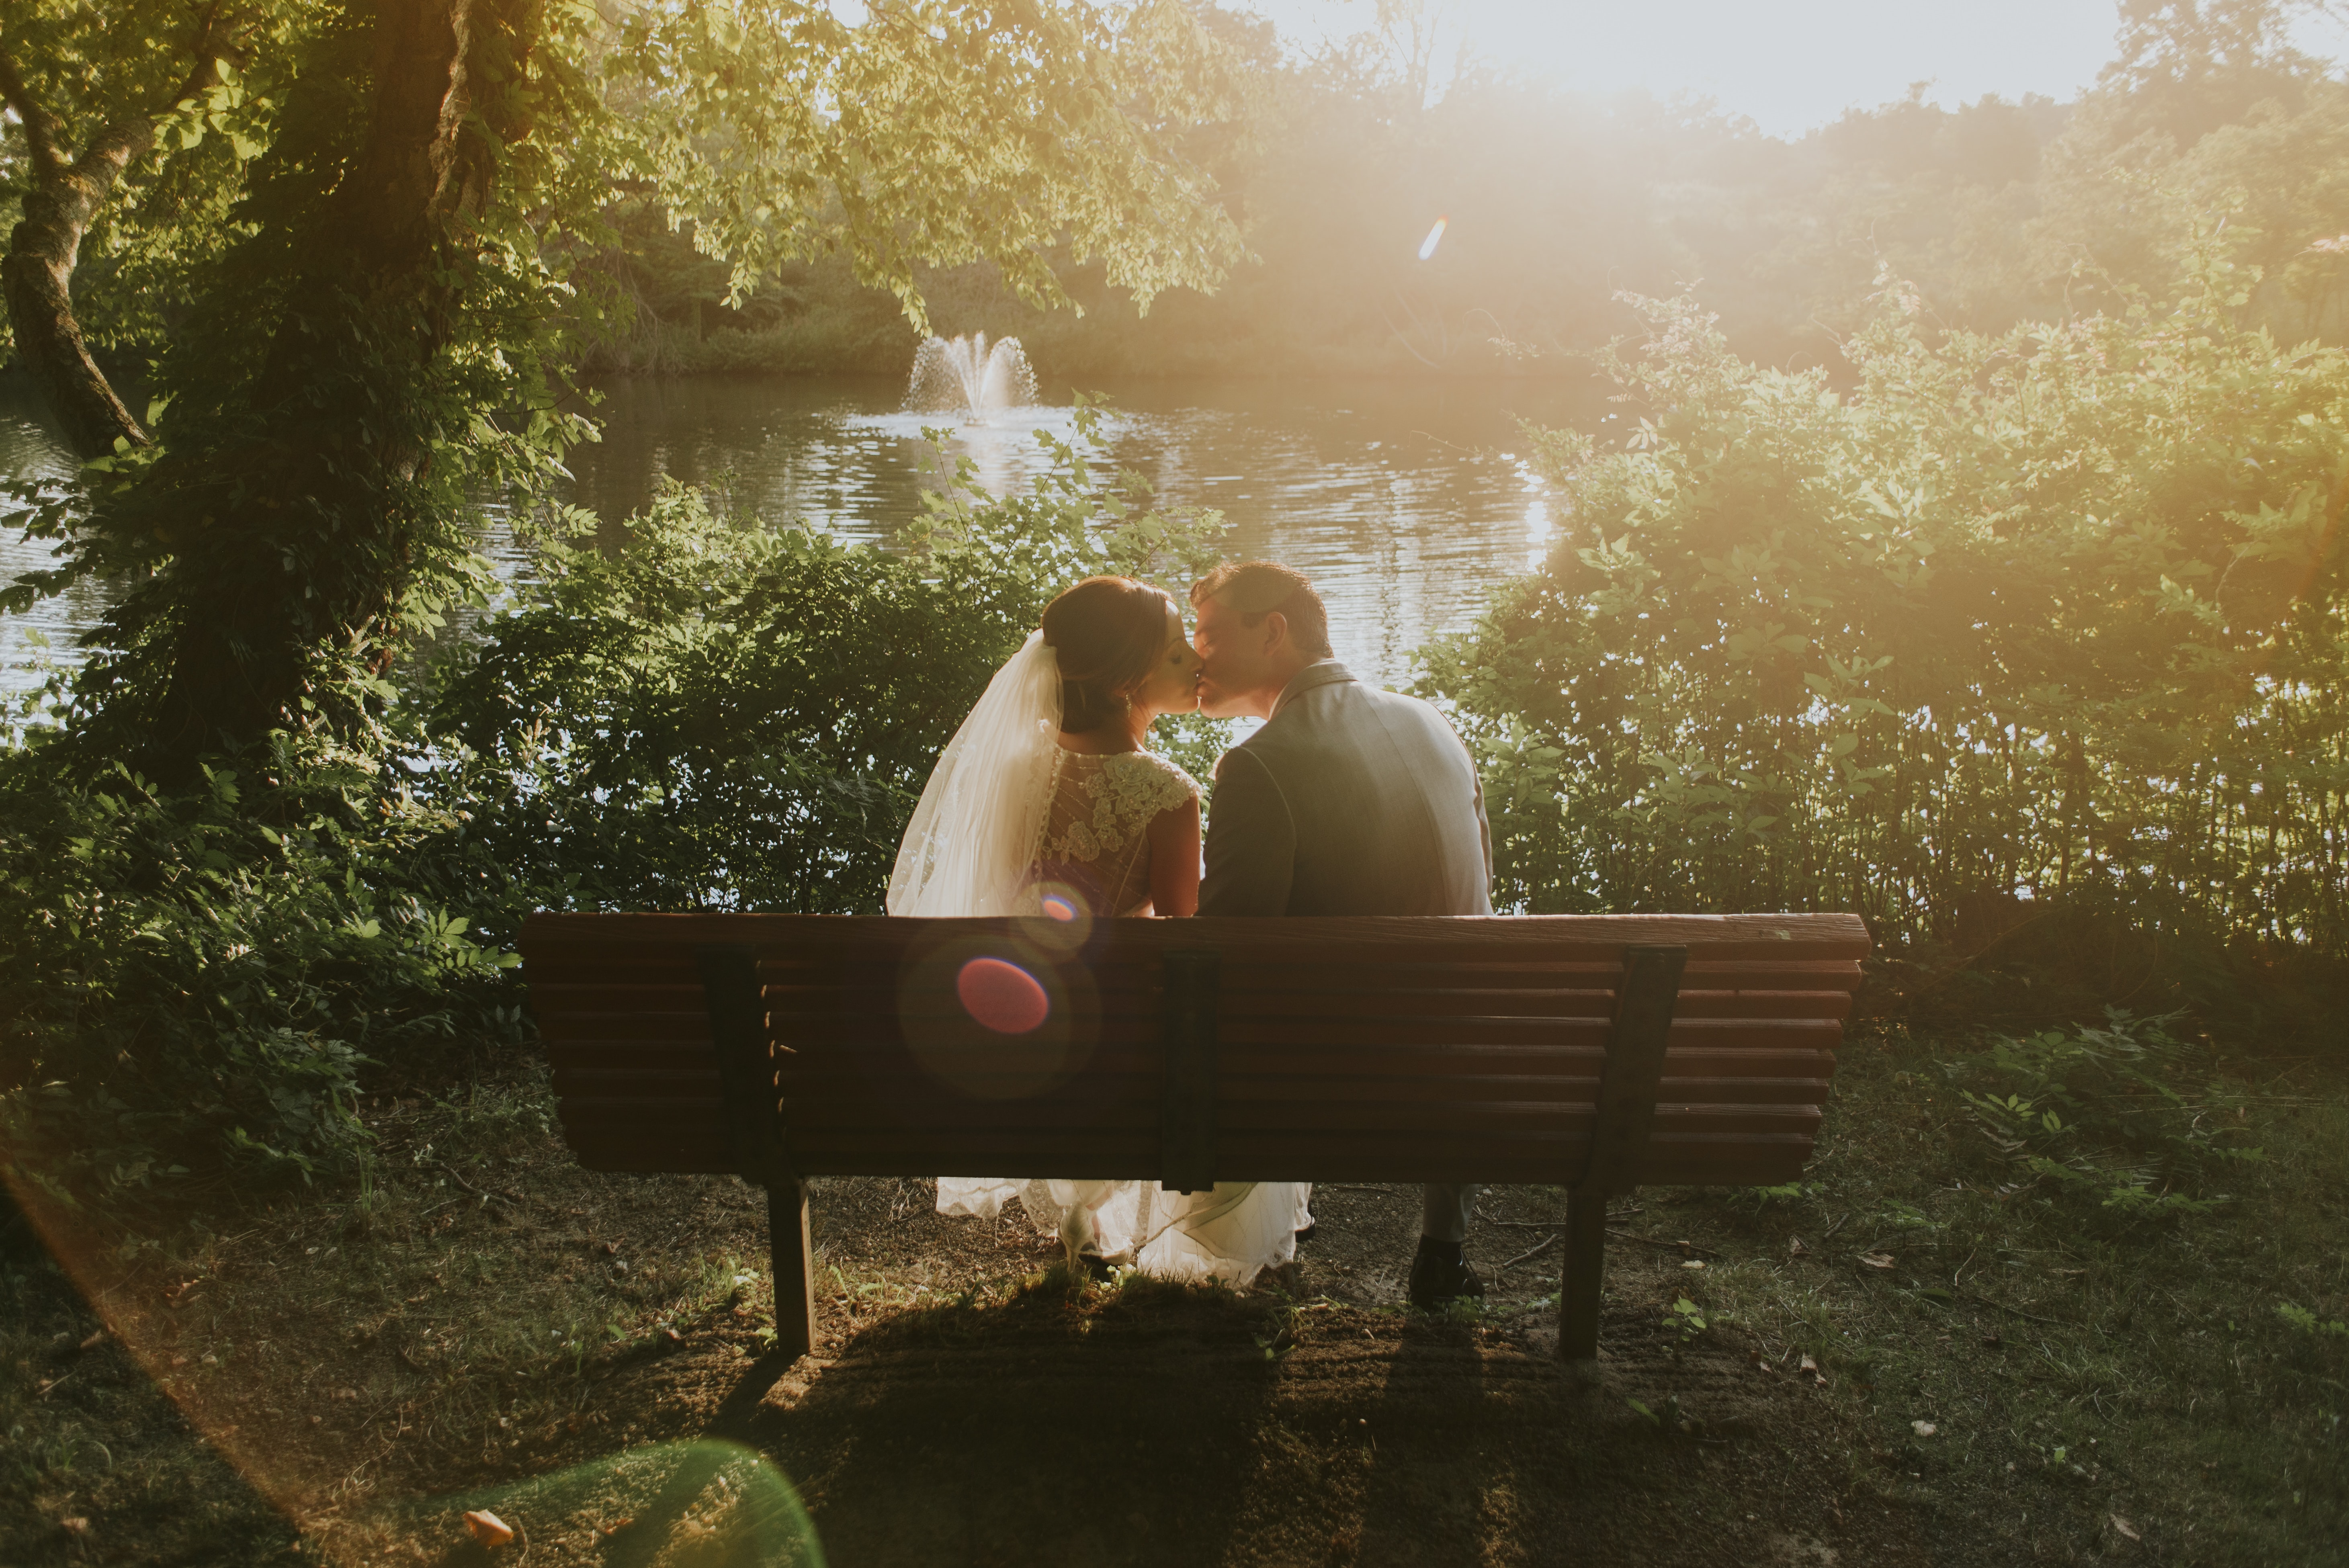 Romantic sunlight over a just married couple kissing on a park bench at a lake